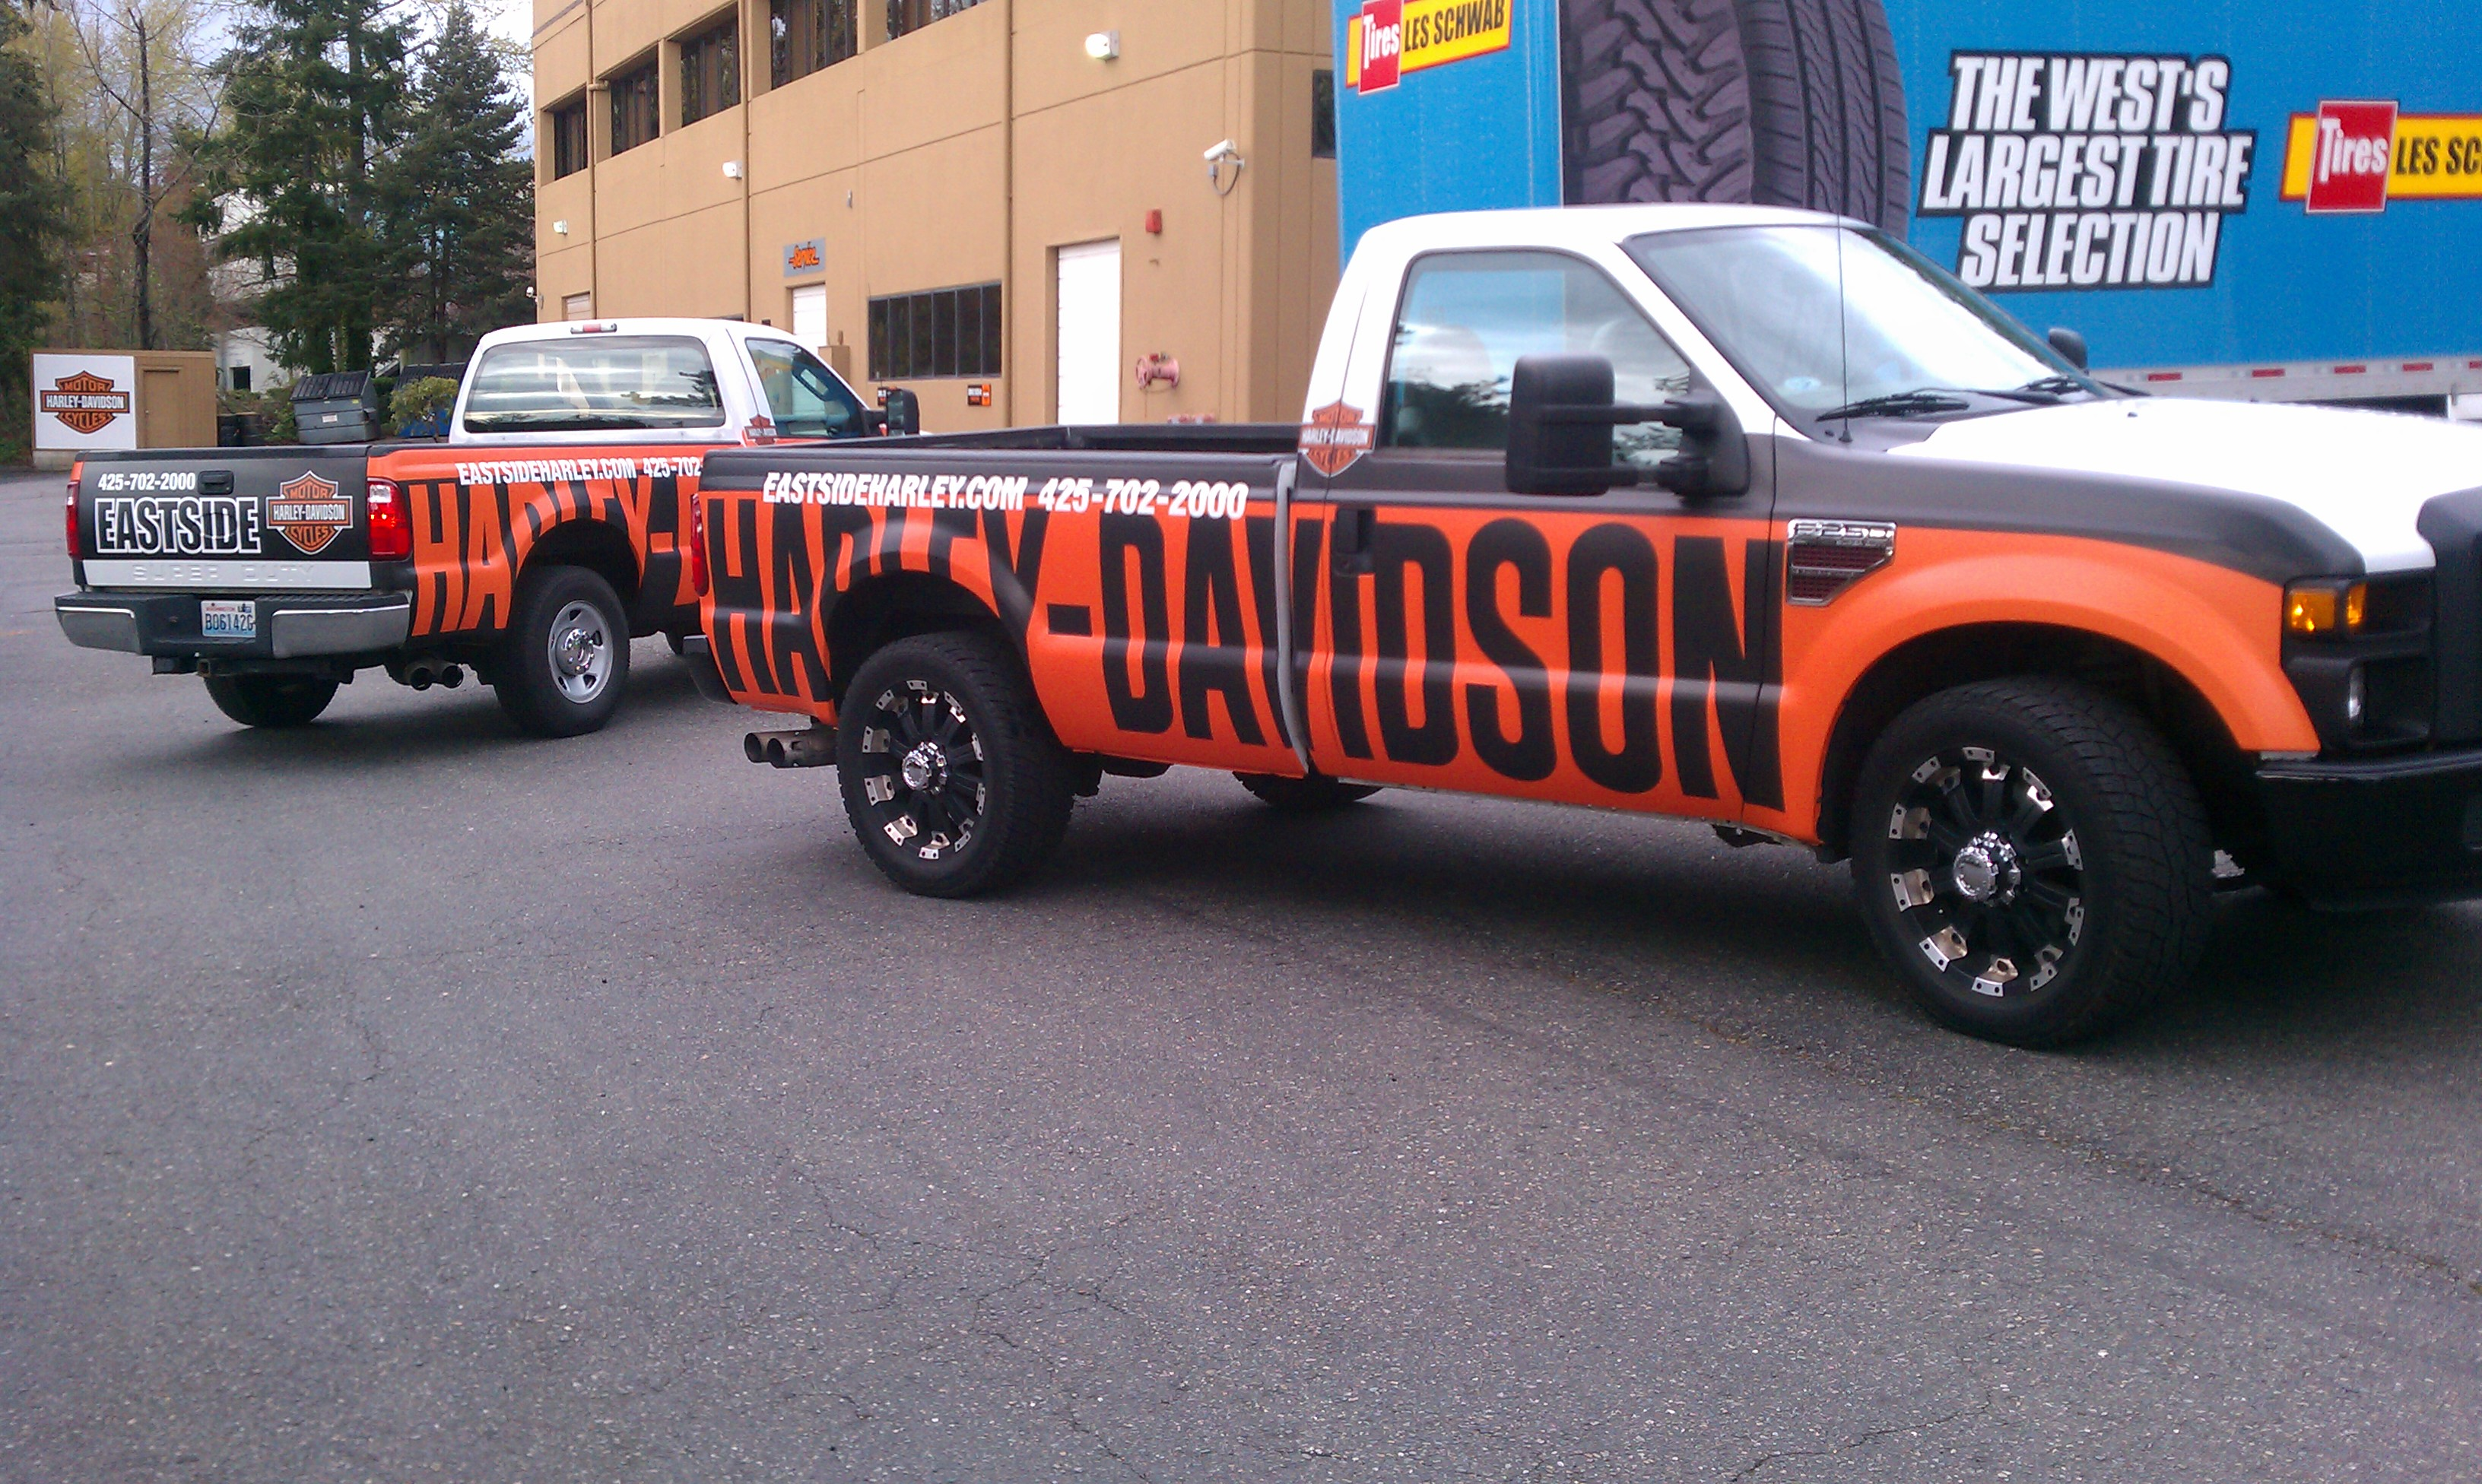 Washington Graphics Designs And Installs Vehicle Wraps For - Harley davidson custom vinyl stickers